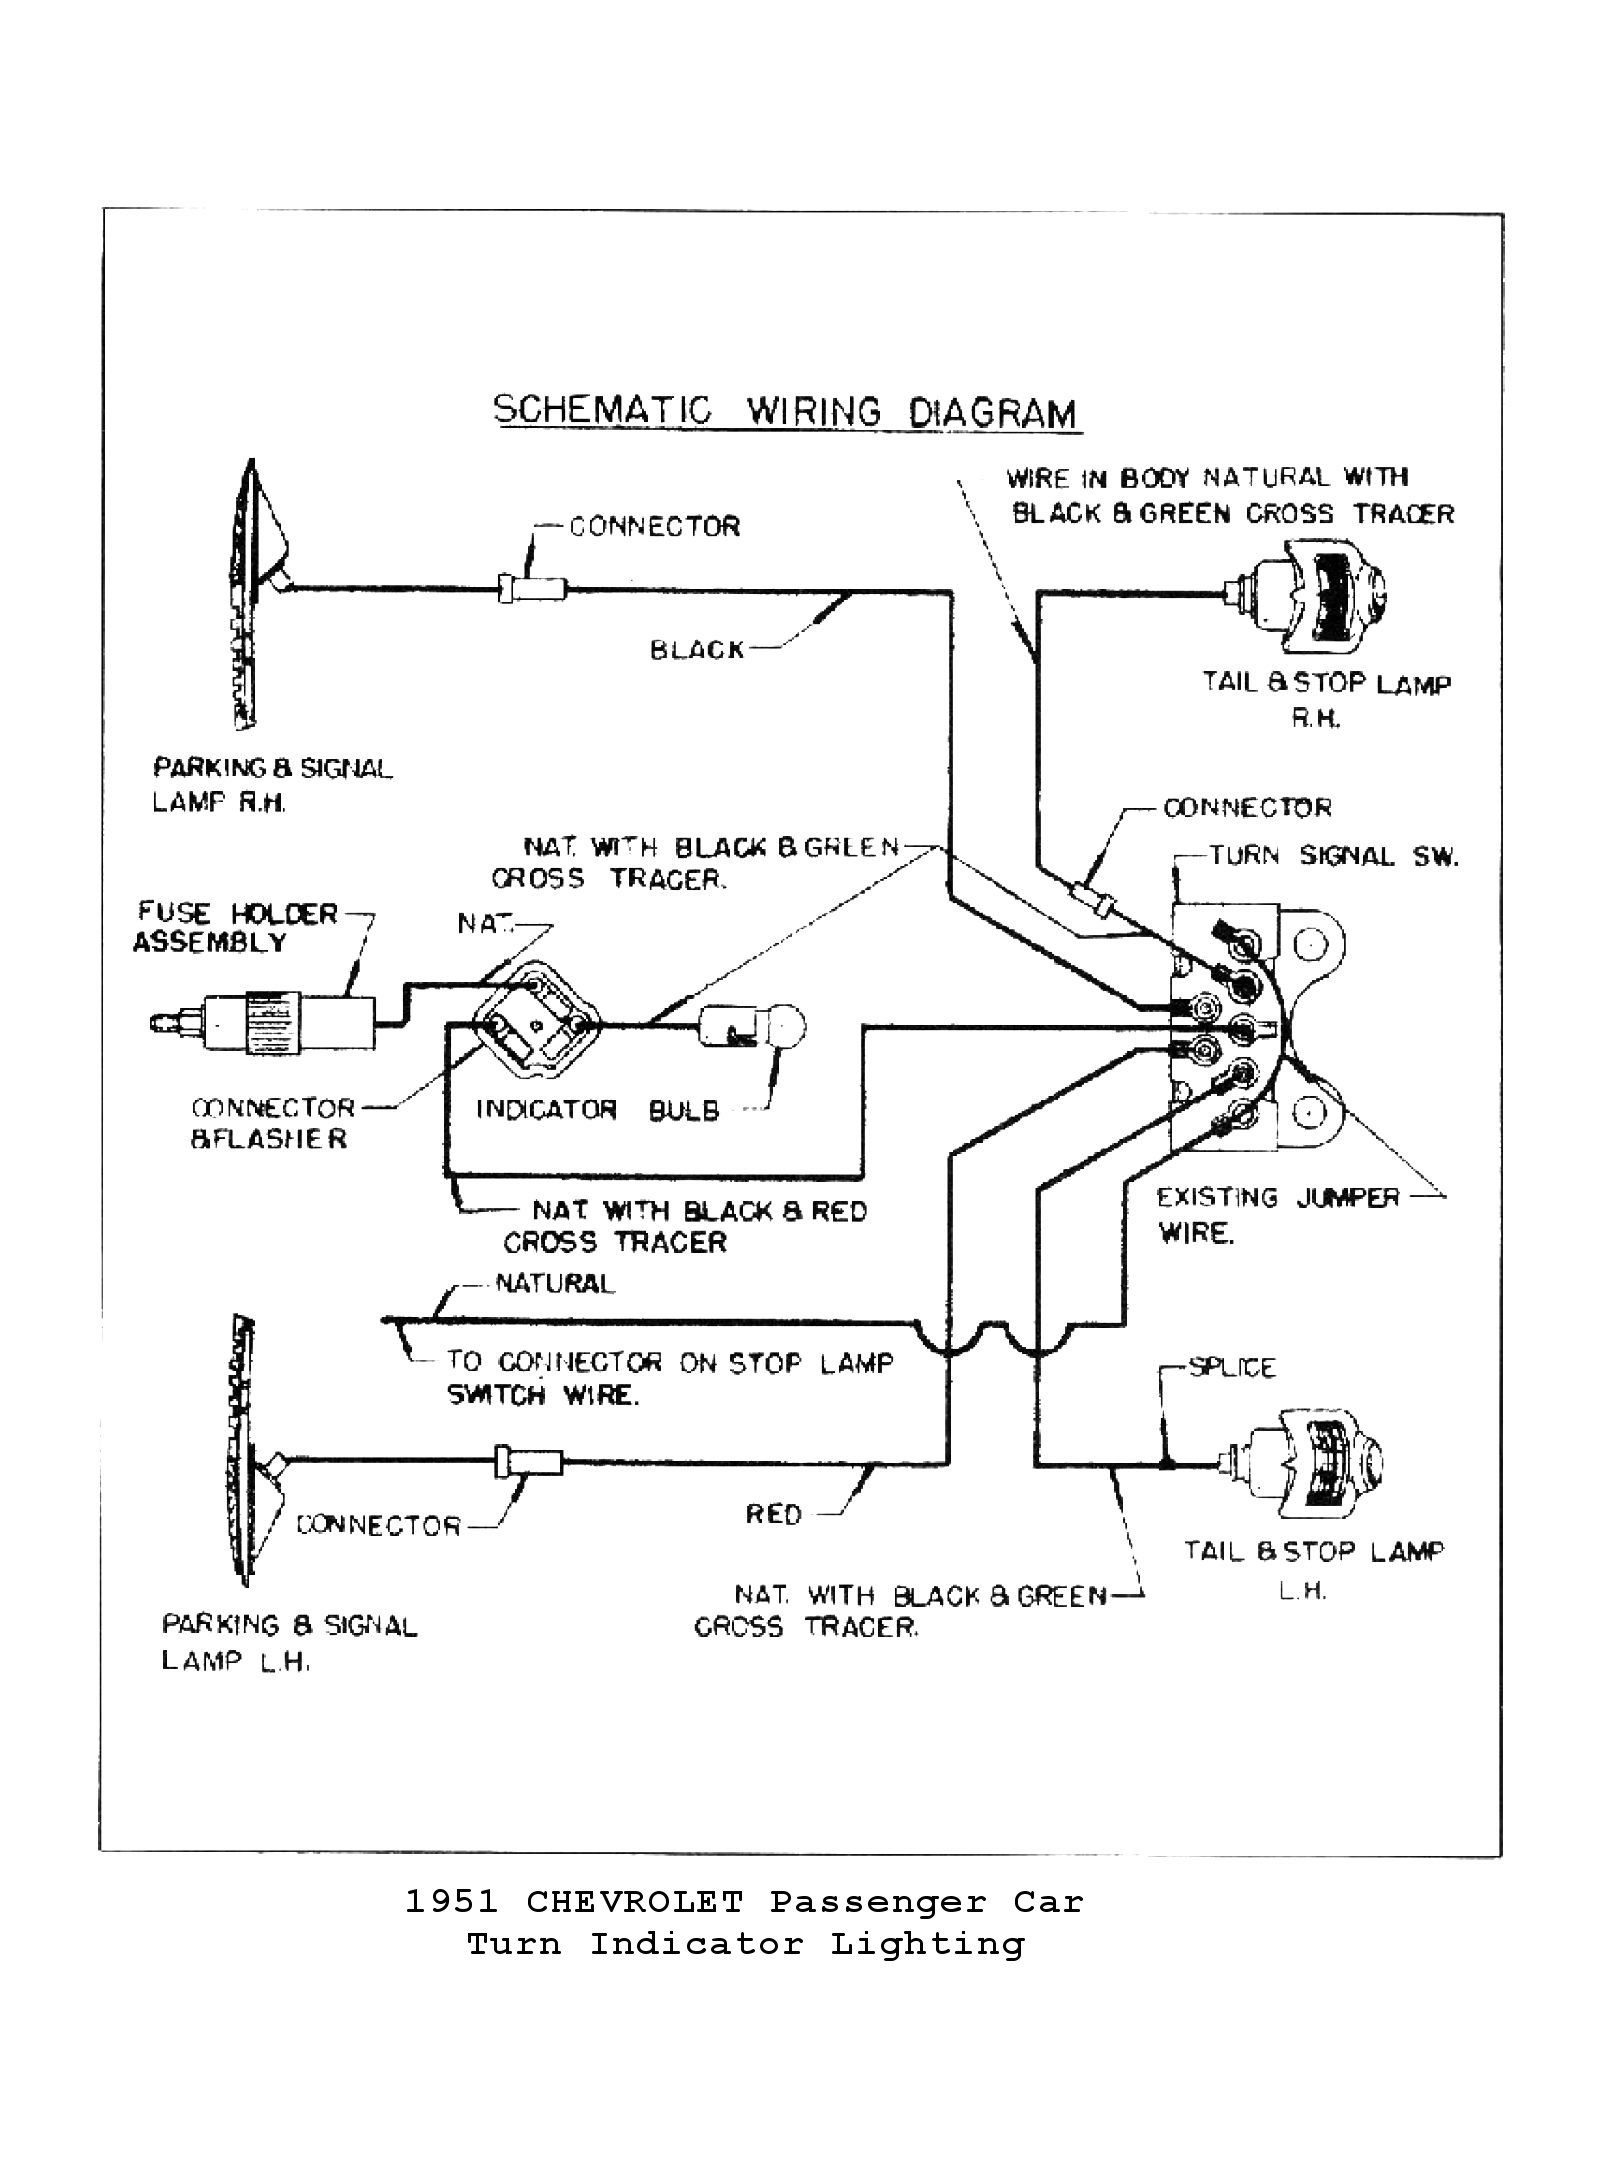 cff4f 1955 chevy voltage regulator wiring diagram | wiring resources  wiring resources